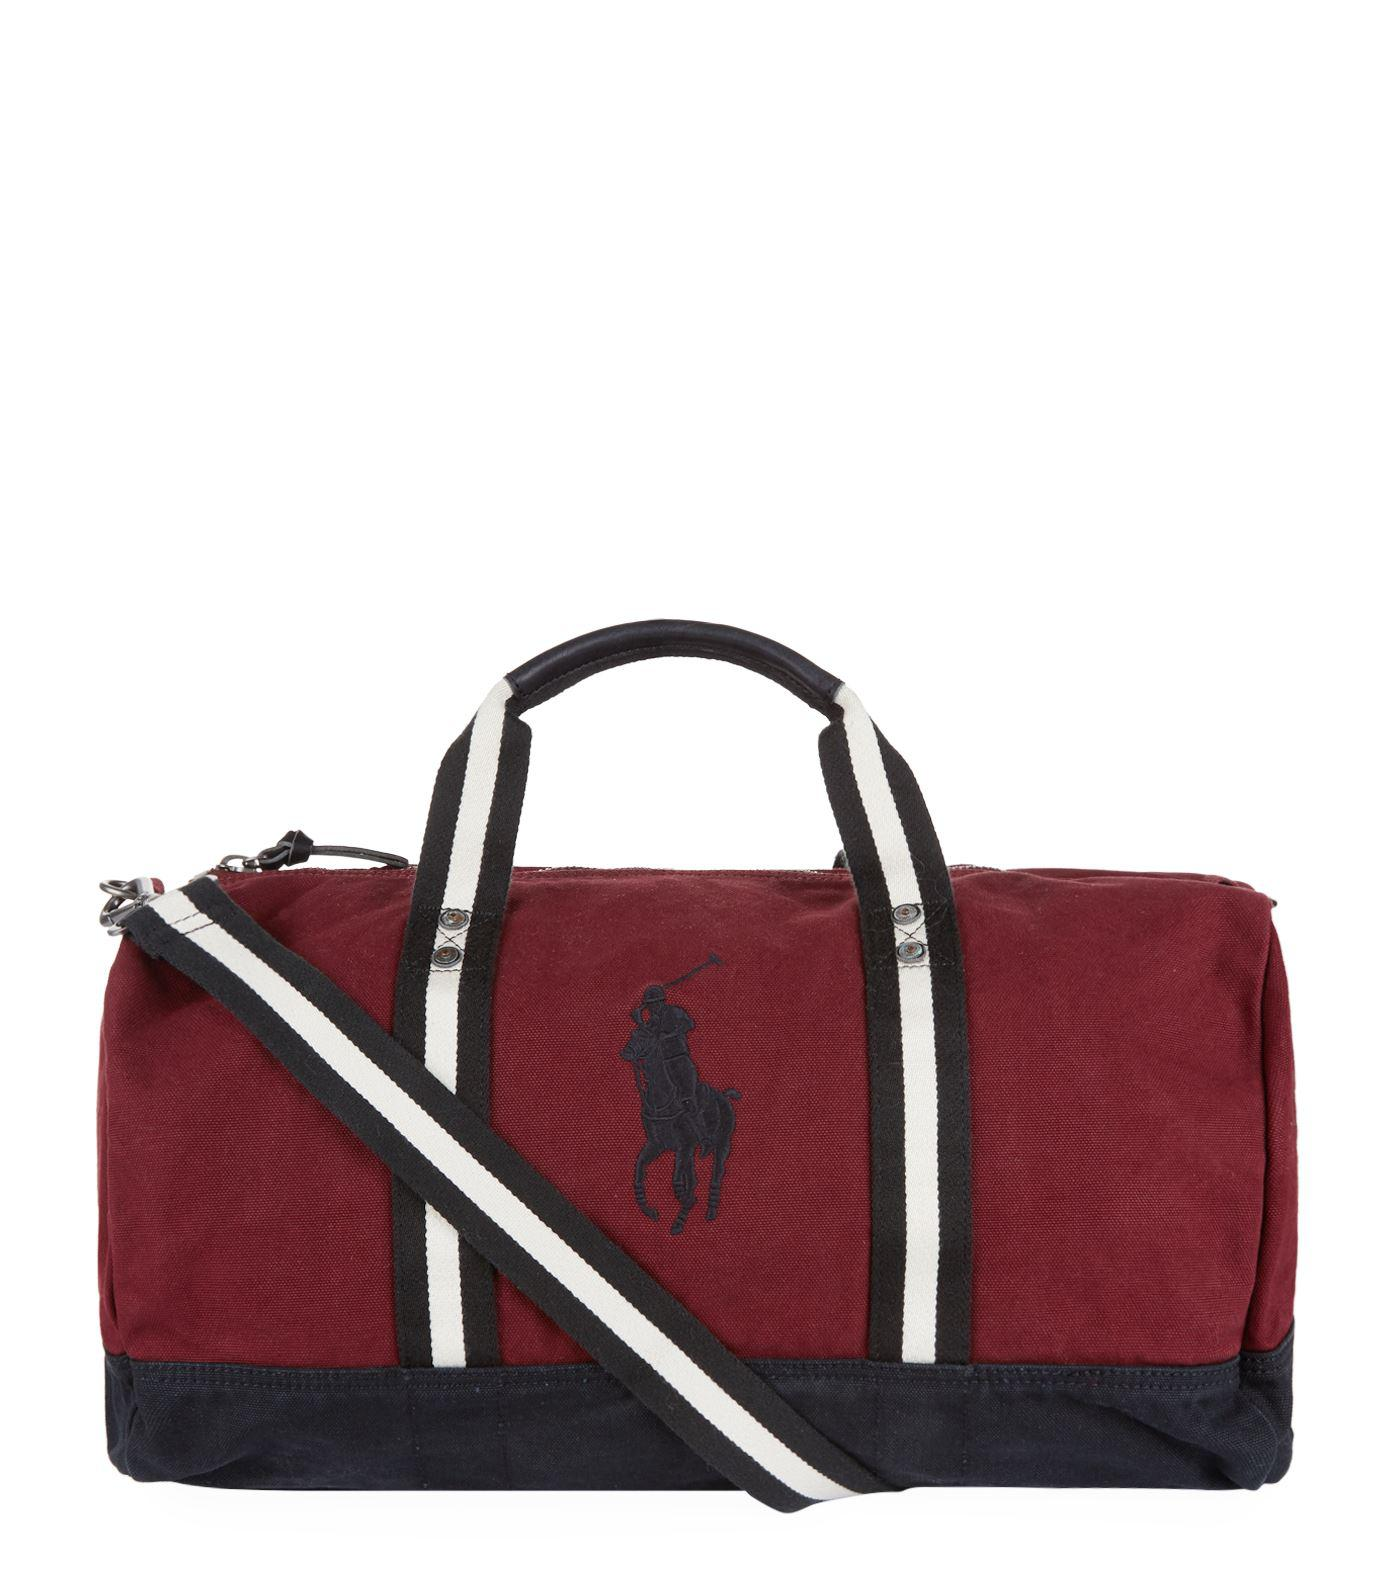 ... france polo ralph lauren. mens red canvas big pony duffle bag a9137  4f8d0 80ab552c55